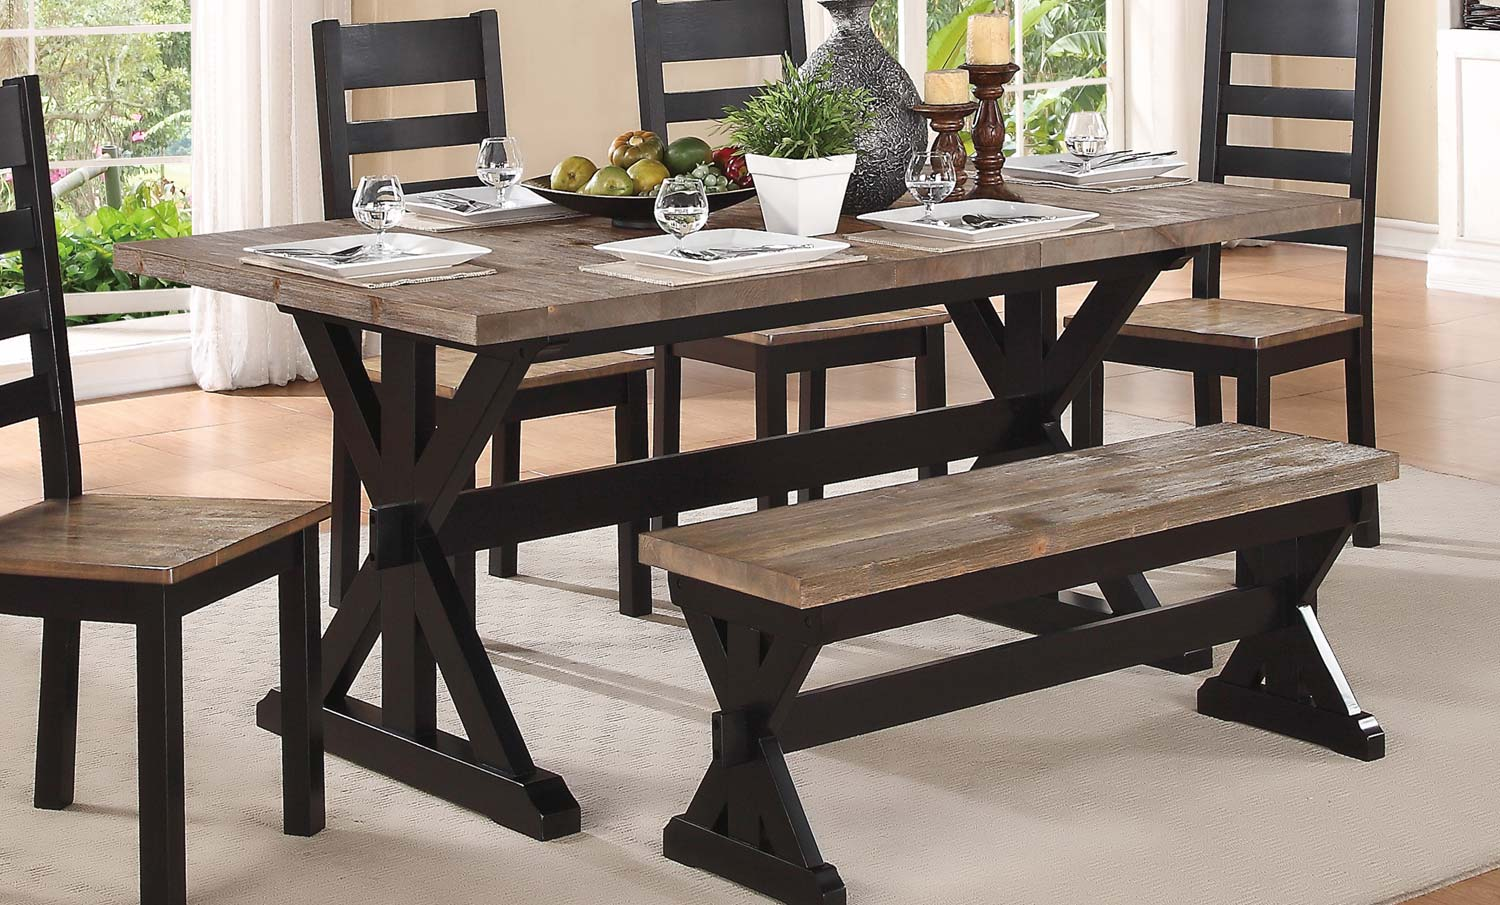 Homelegance North Port Trestle Dining Table   Two Tone Black/Brown Part 10